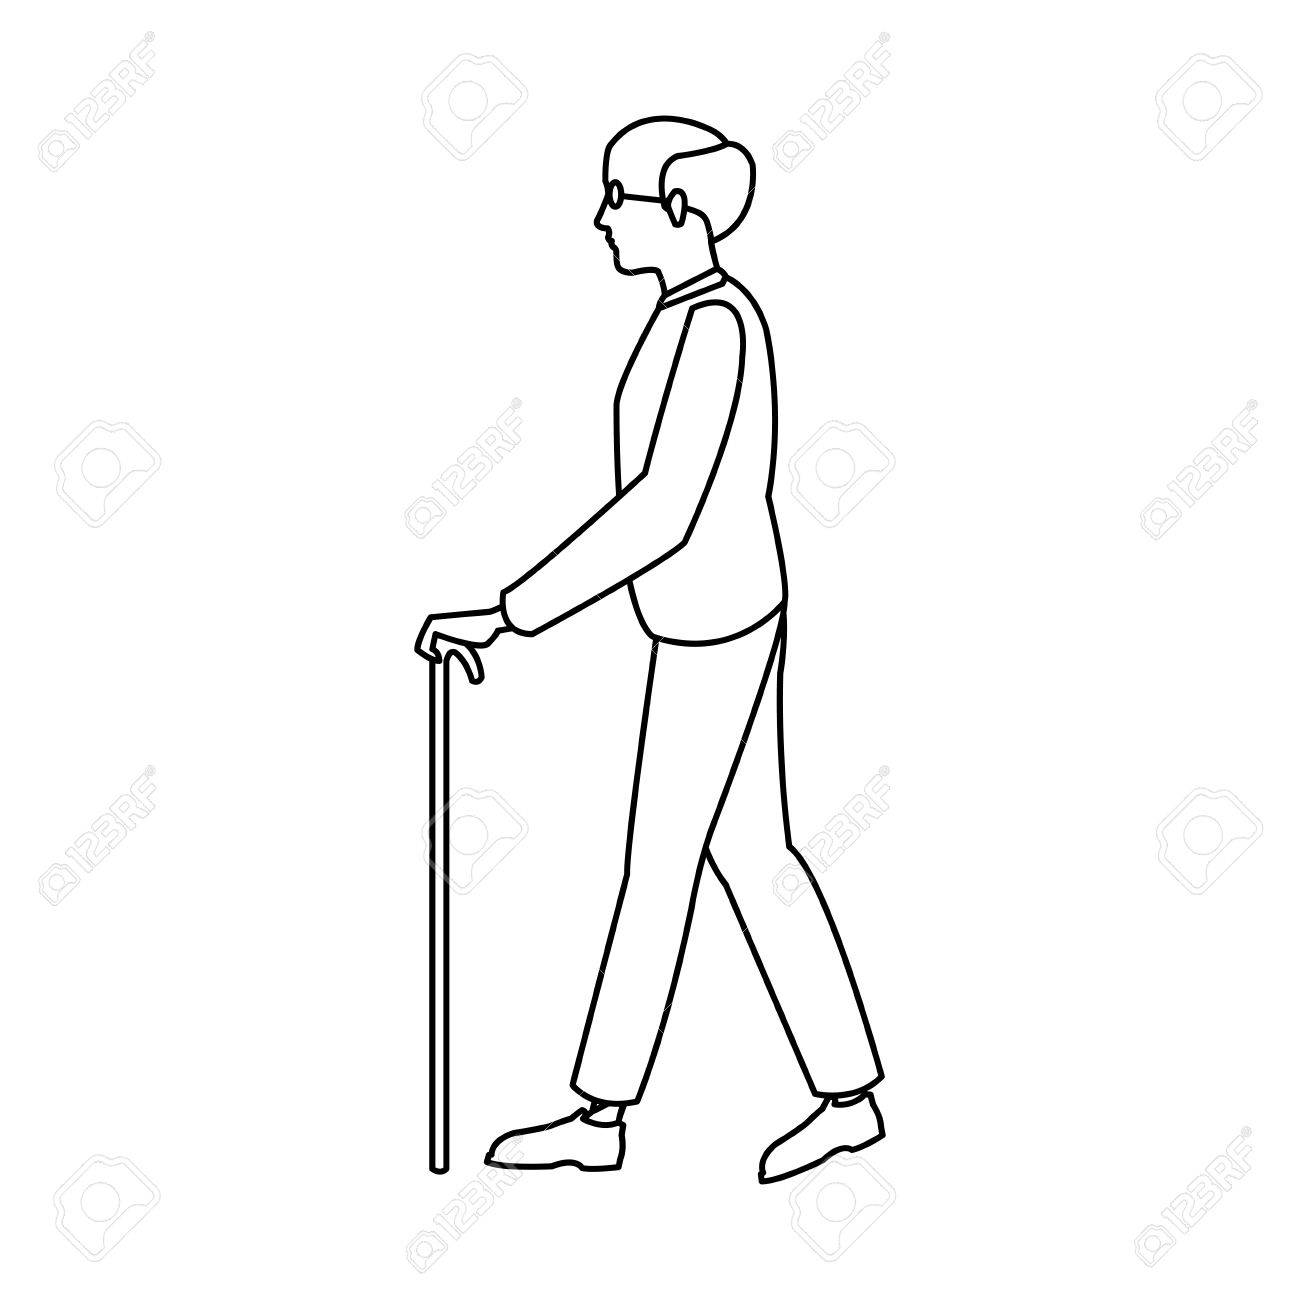 1300x1300 Bald Man Elderly Walking With Cane Stick Outline Vector